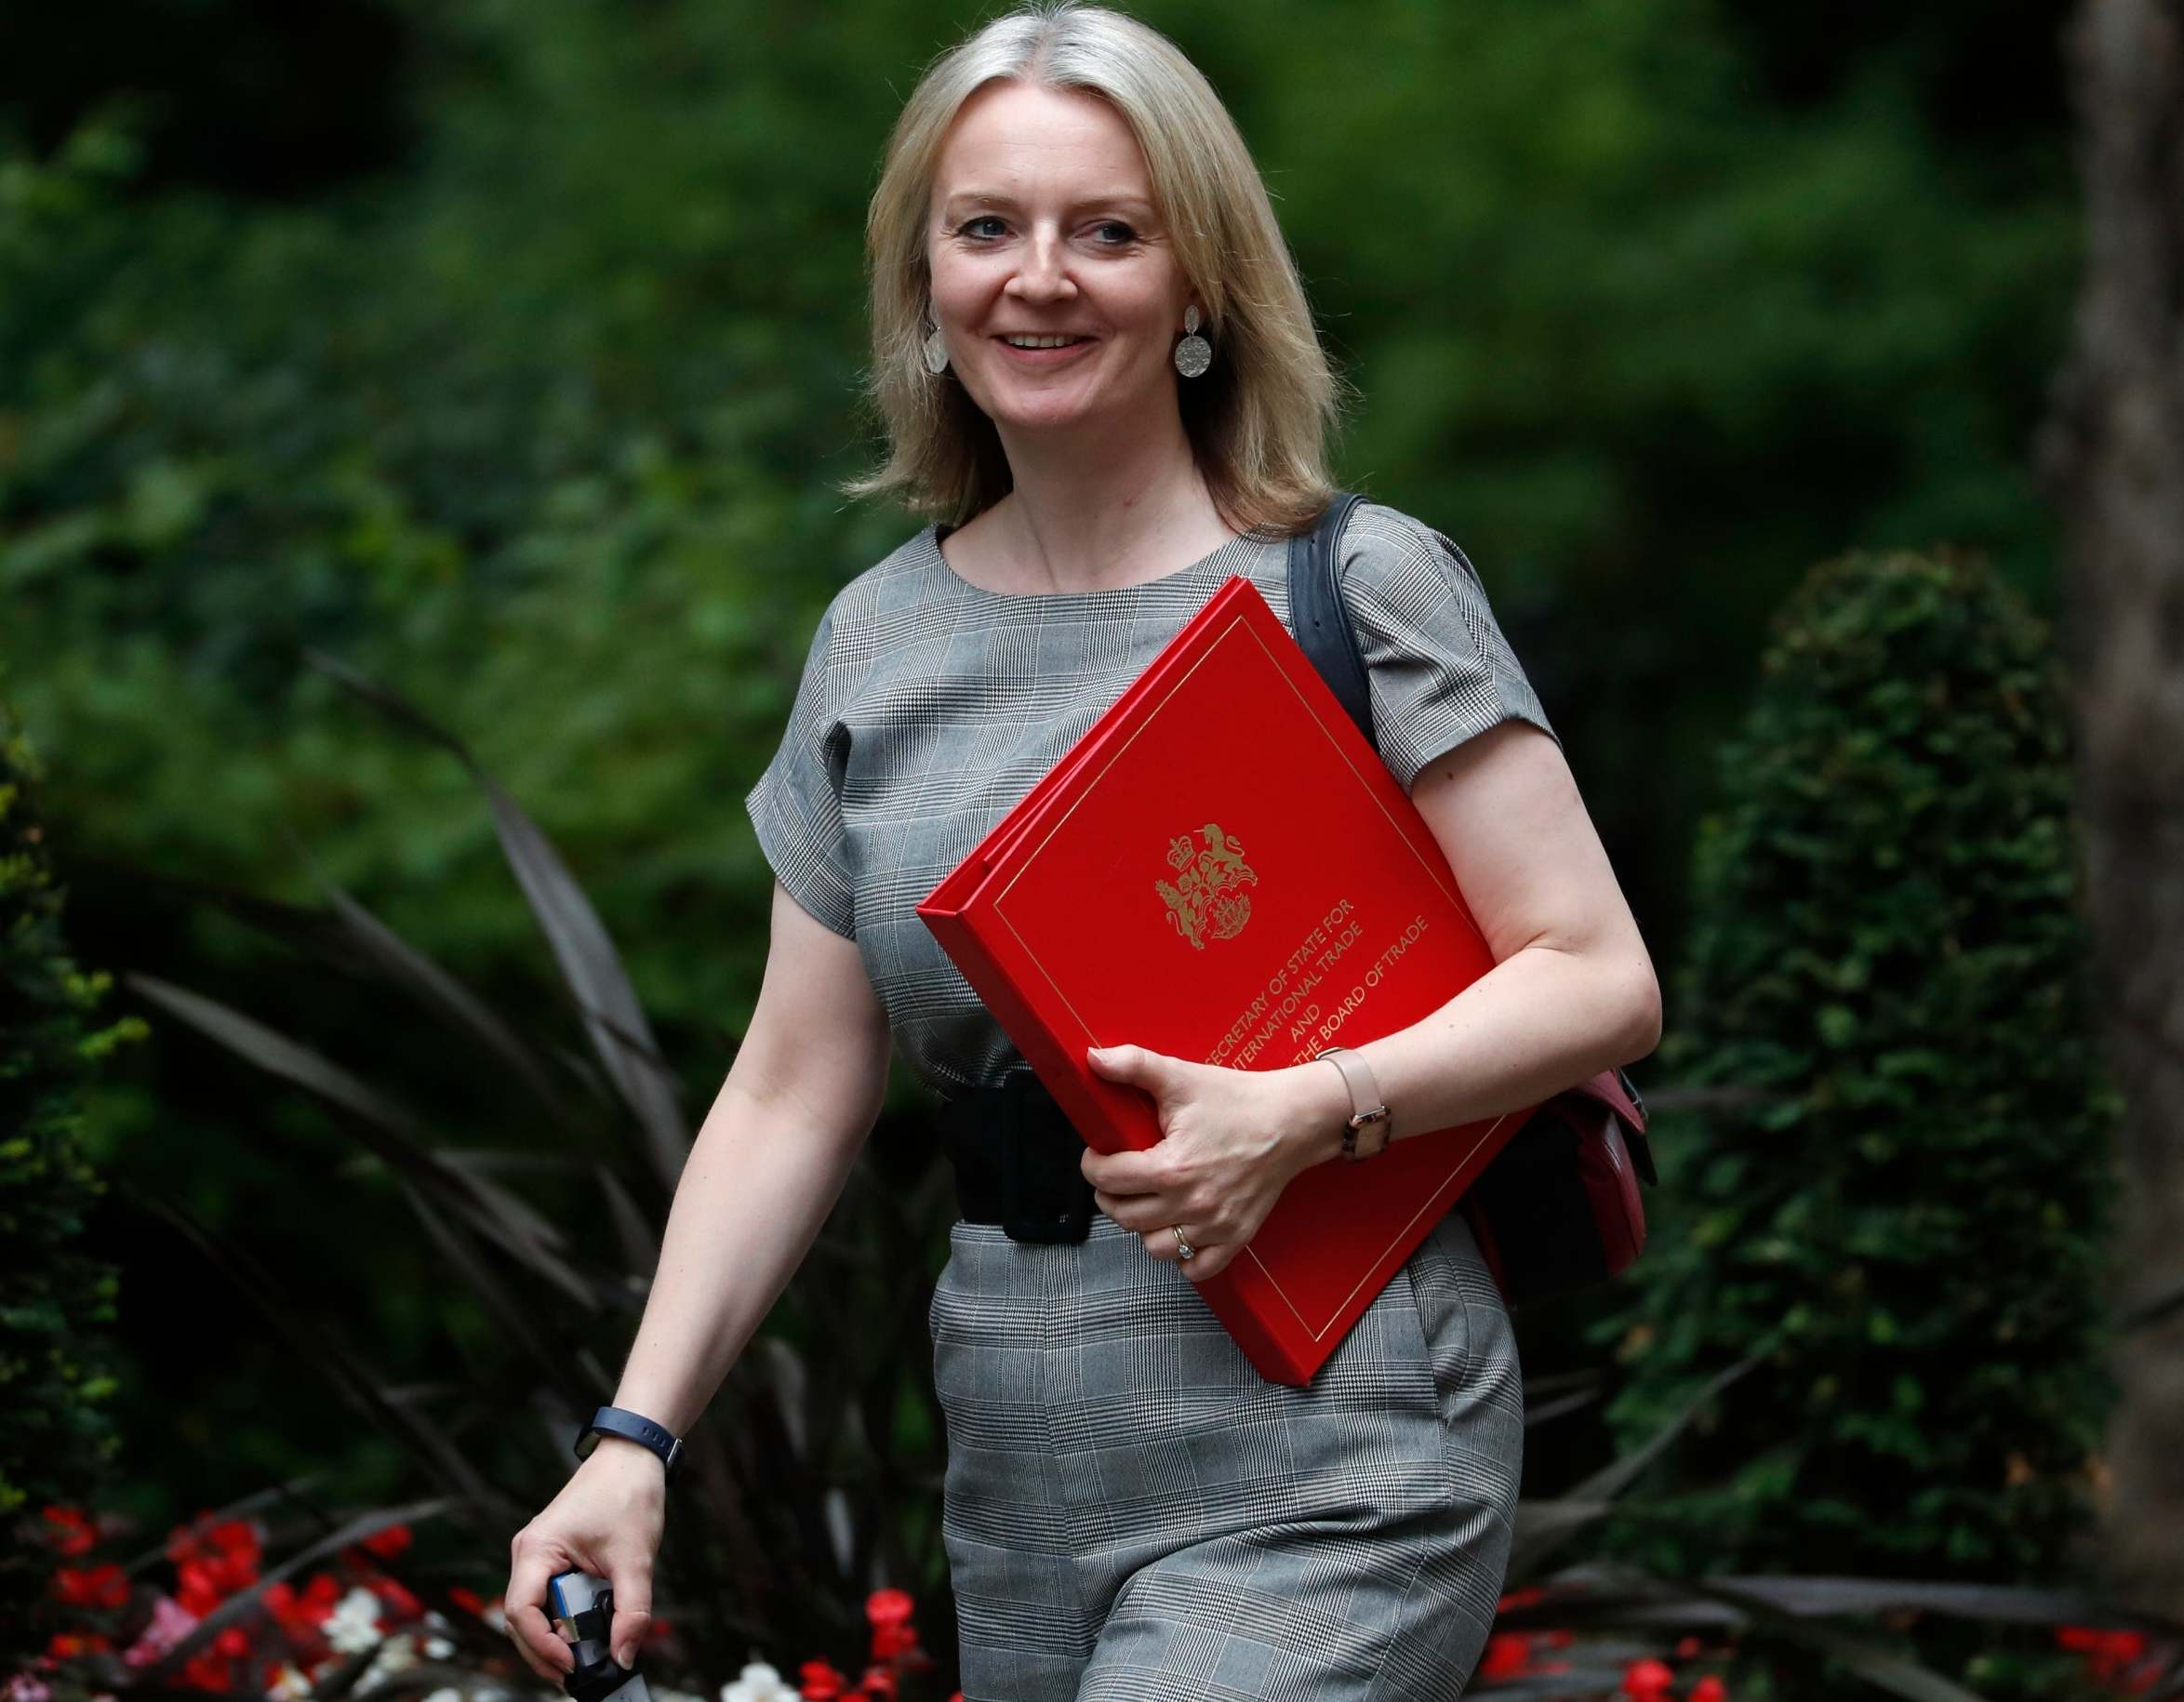 Tory government 'looking at' granting Australians freedom of movement denied to EU citizens after Brexit, cabinet minister Liz Truss says